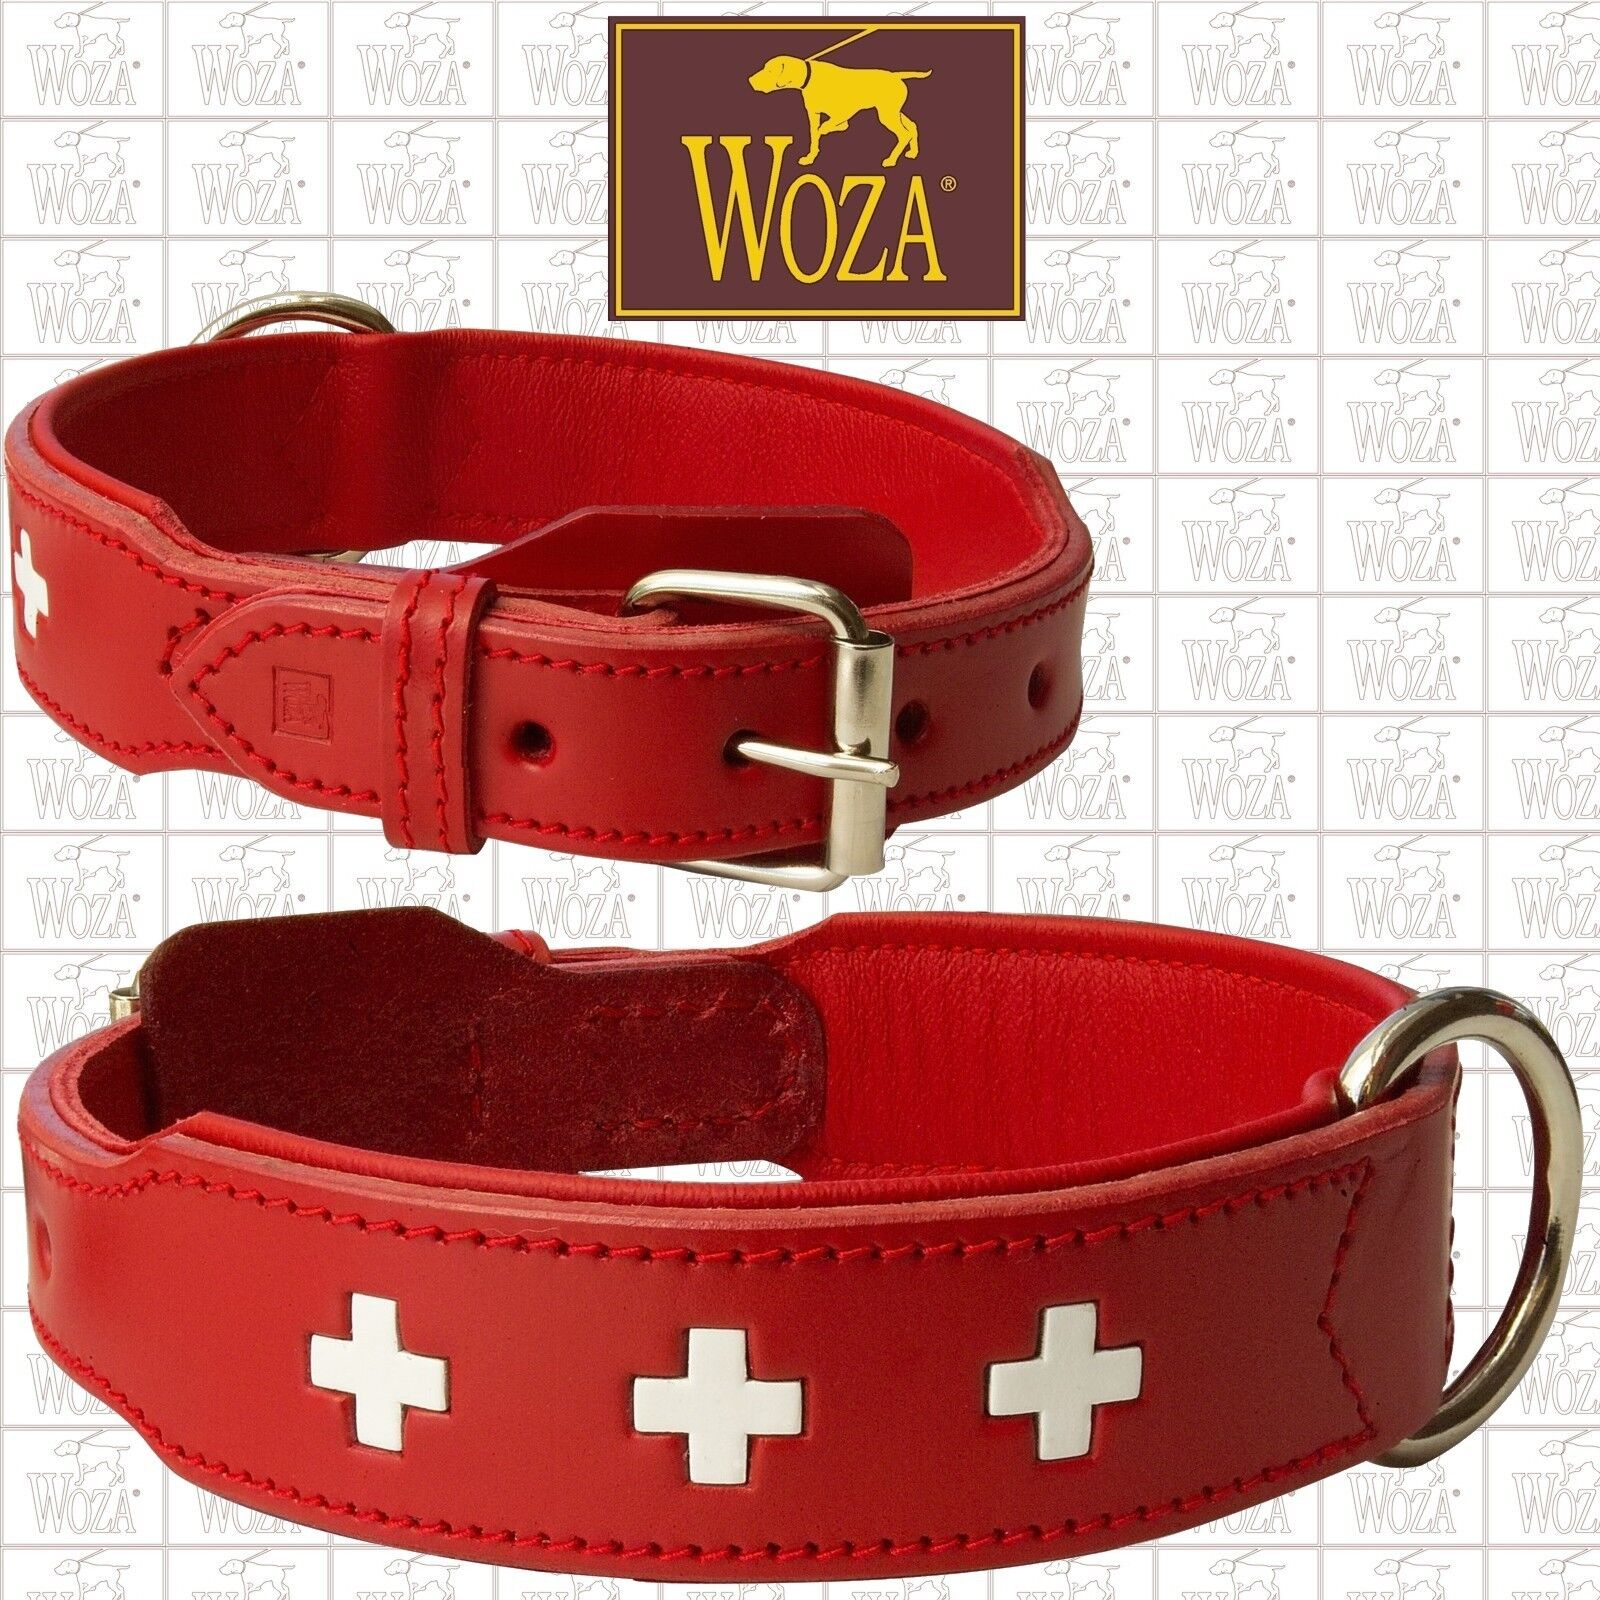 PREMIUM DOG COLLAR WOZA FULL LEATHER SWISS GENUINE COW NAPA PADDED HANDMADE E708